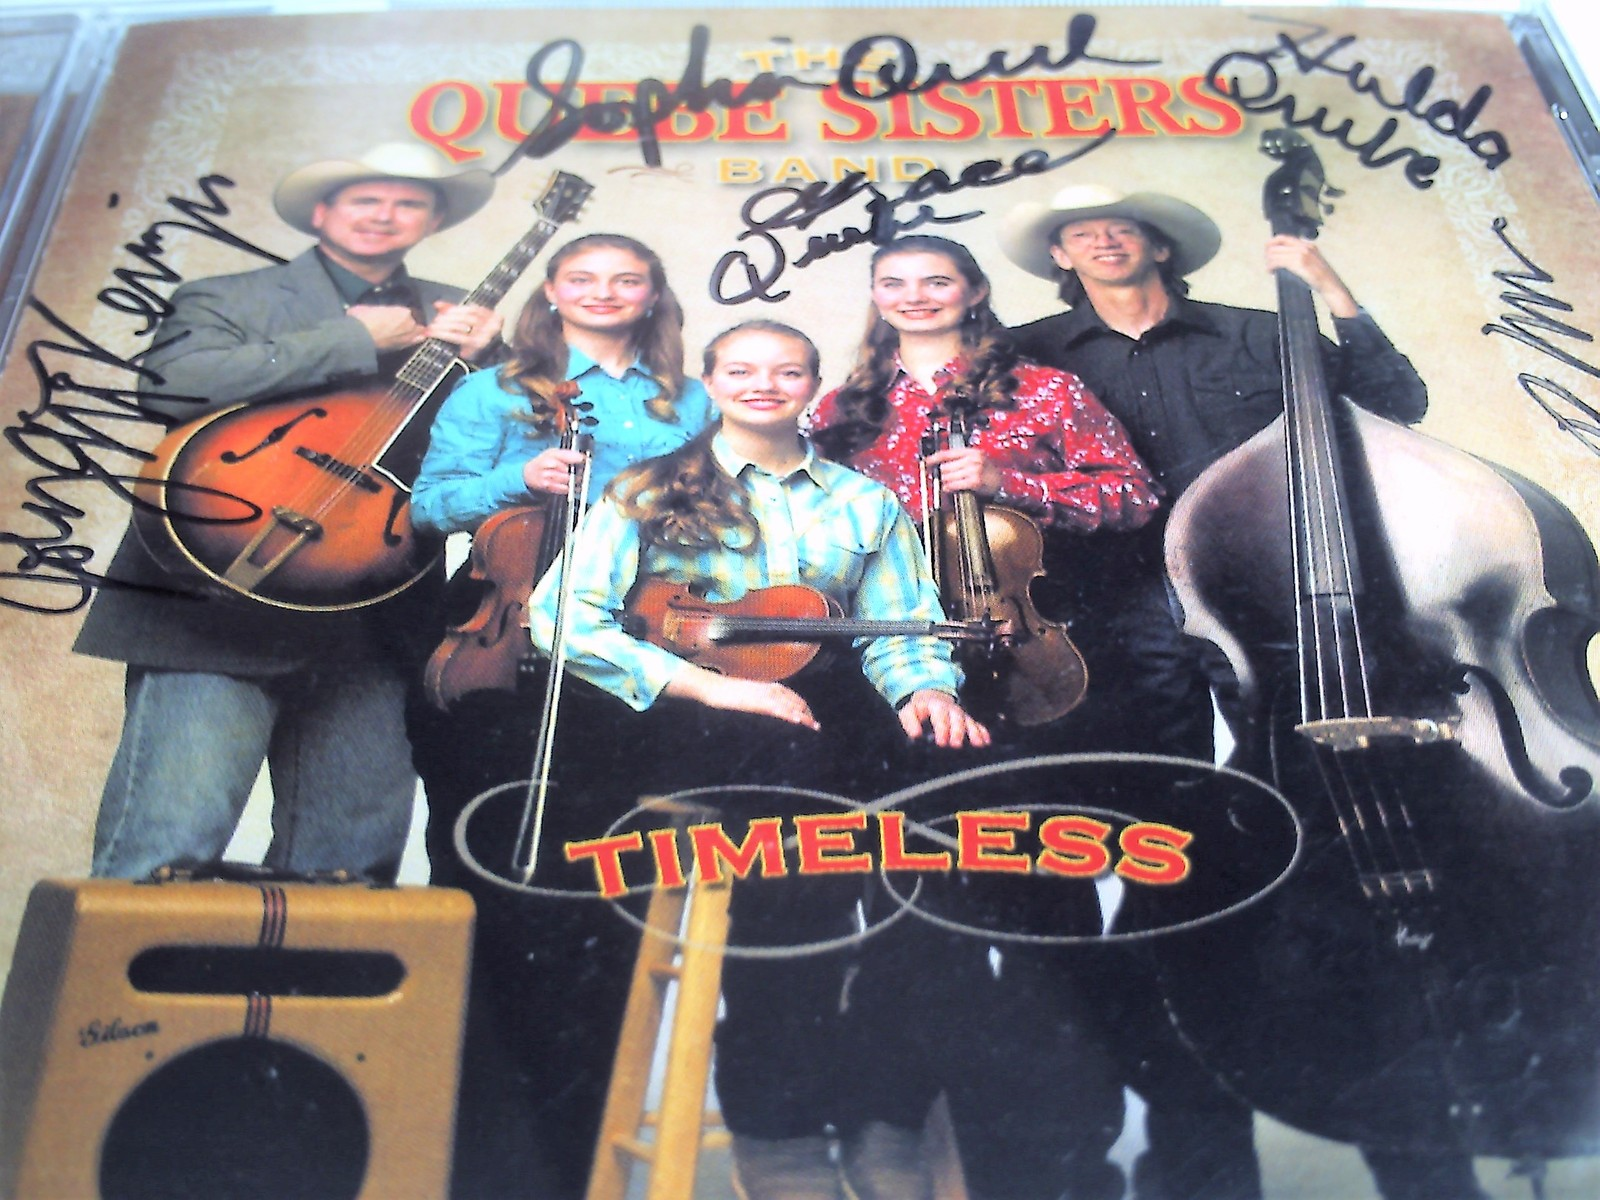 Quebe Sisters Band Timeless CD - signed